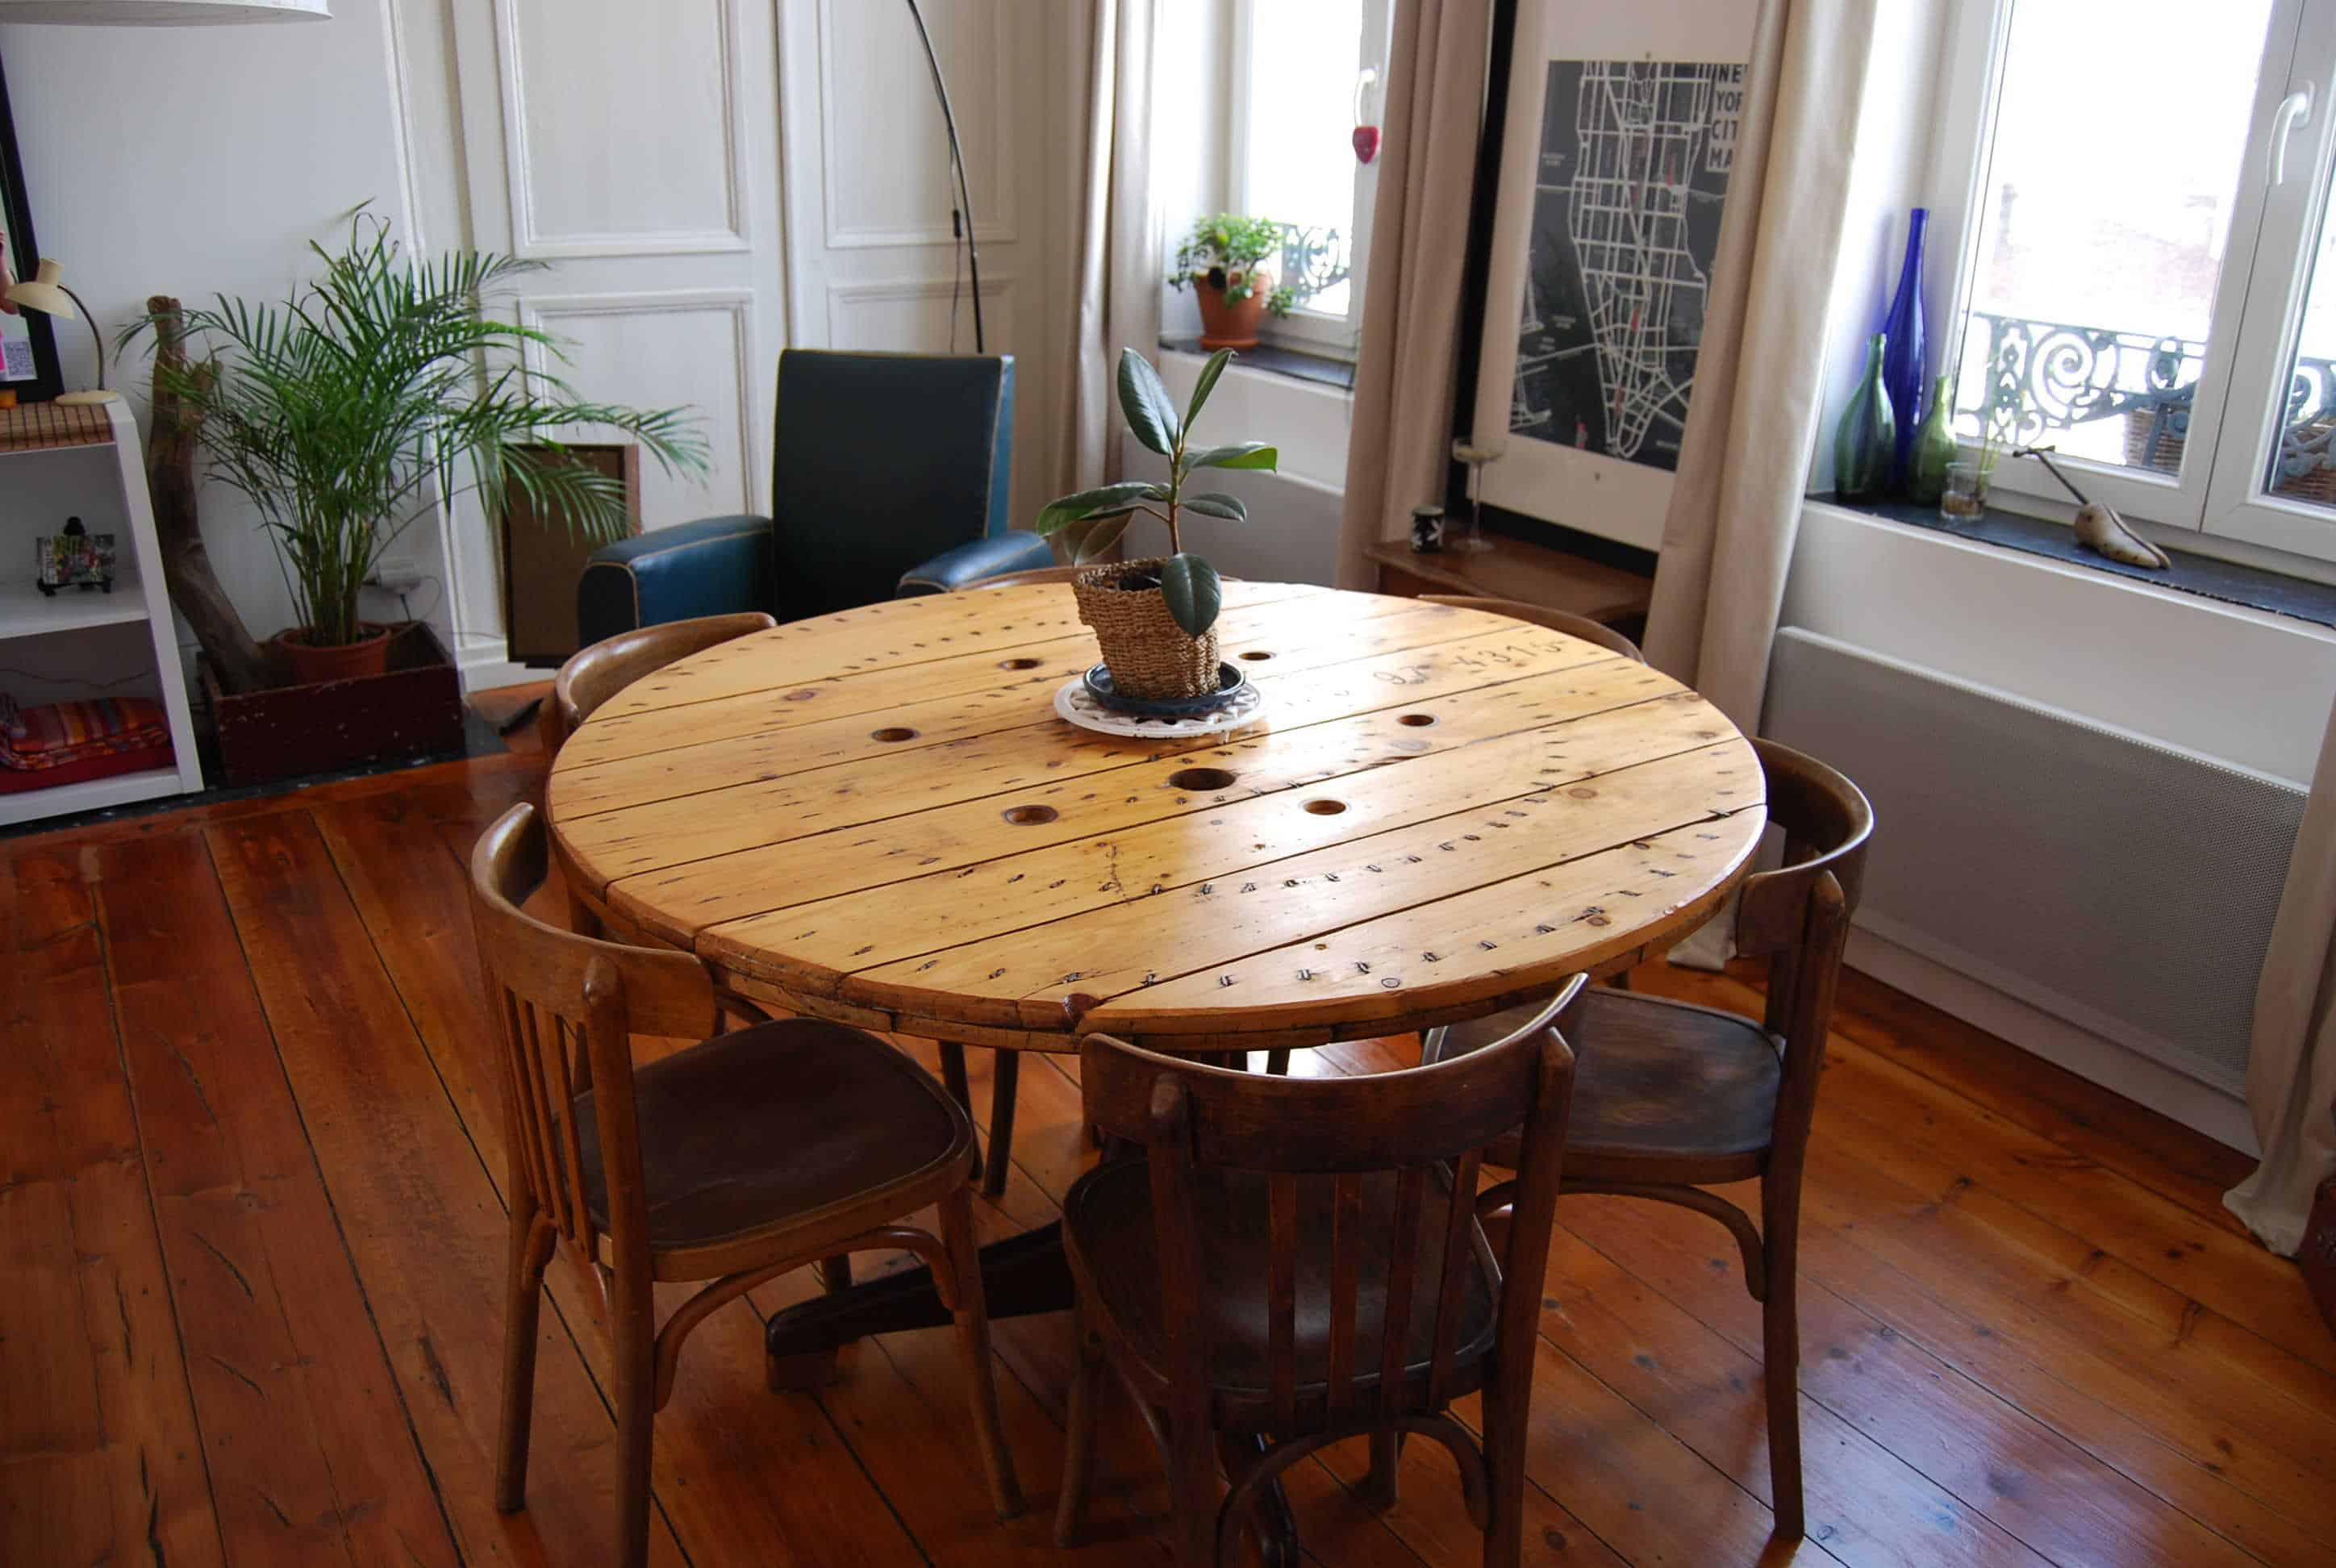 Reel Dining Table Touret Recycled Ideas Recyclart